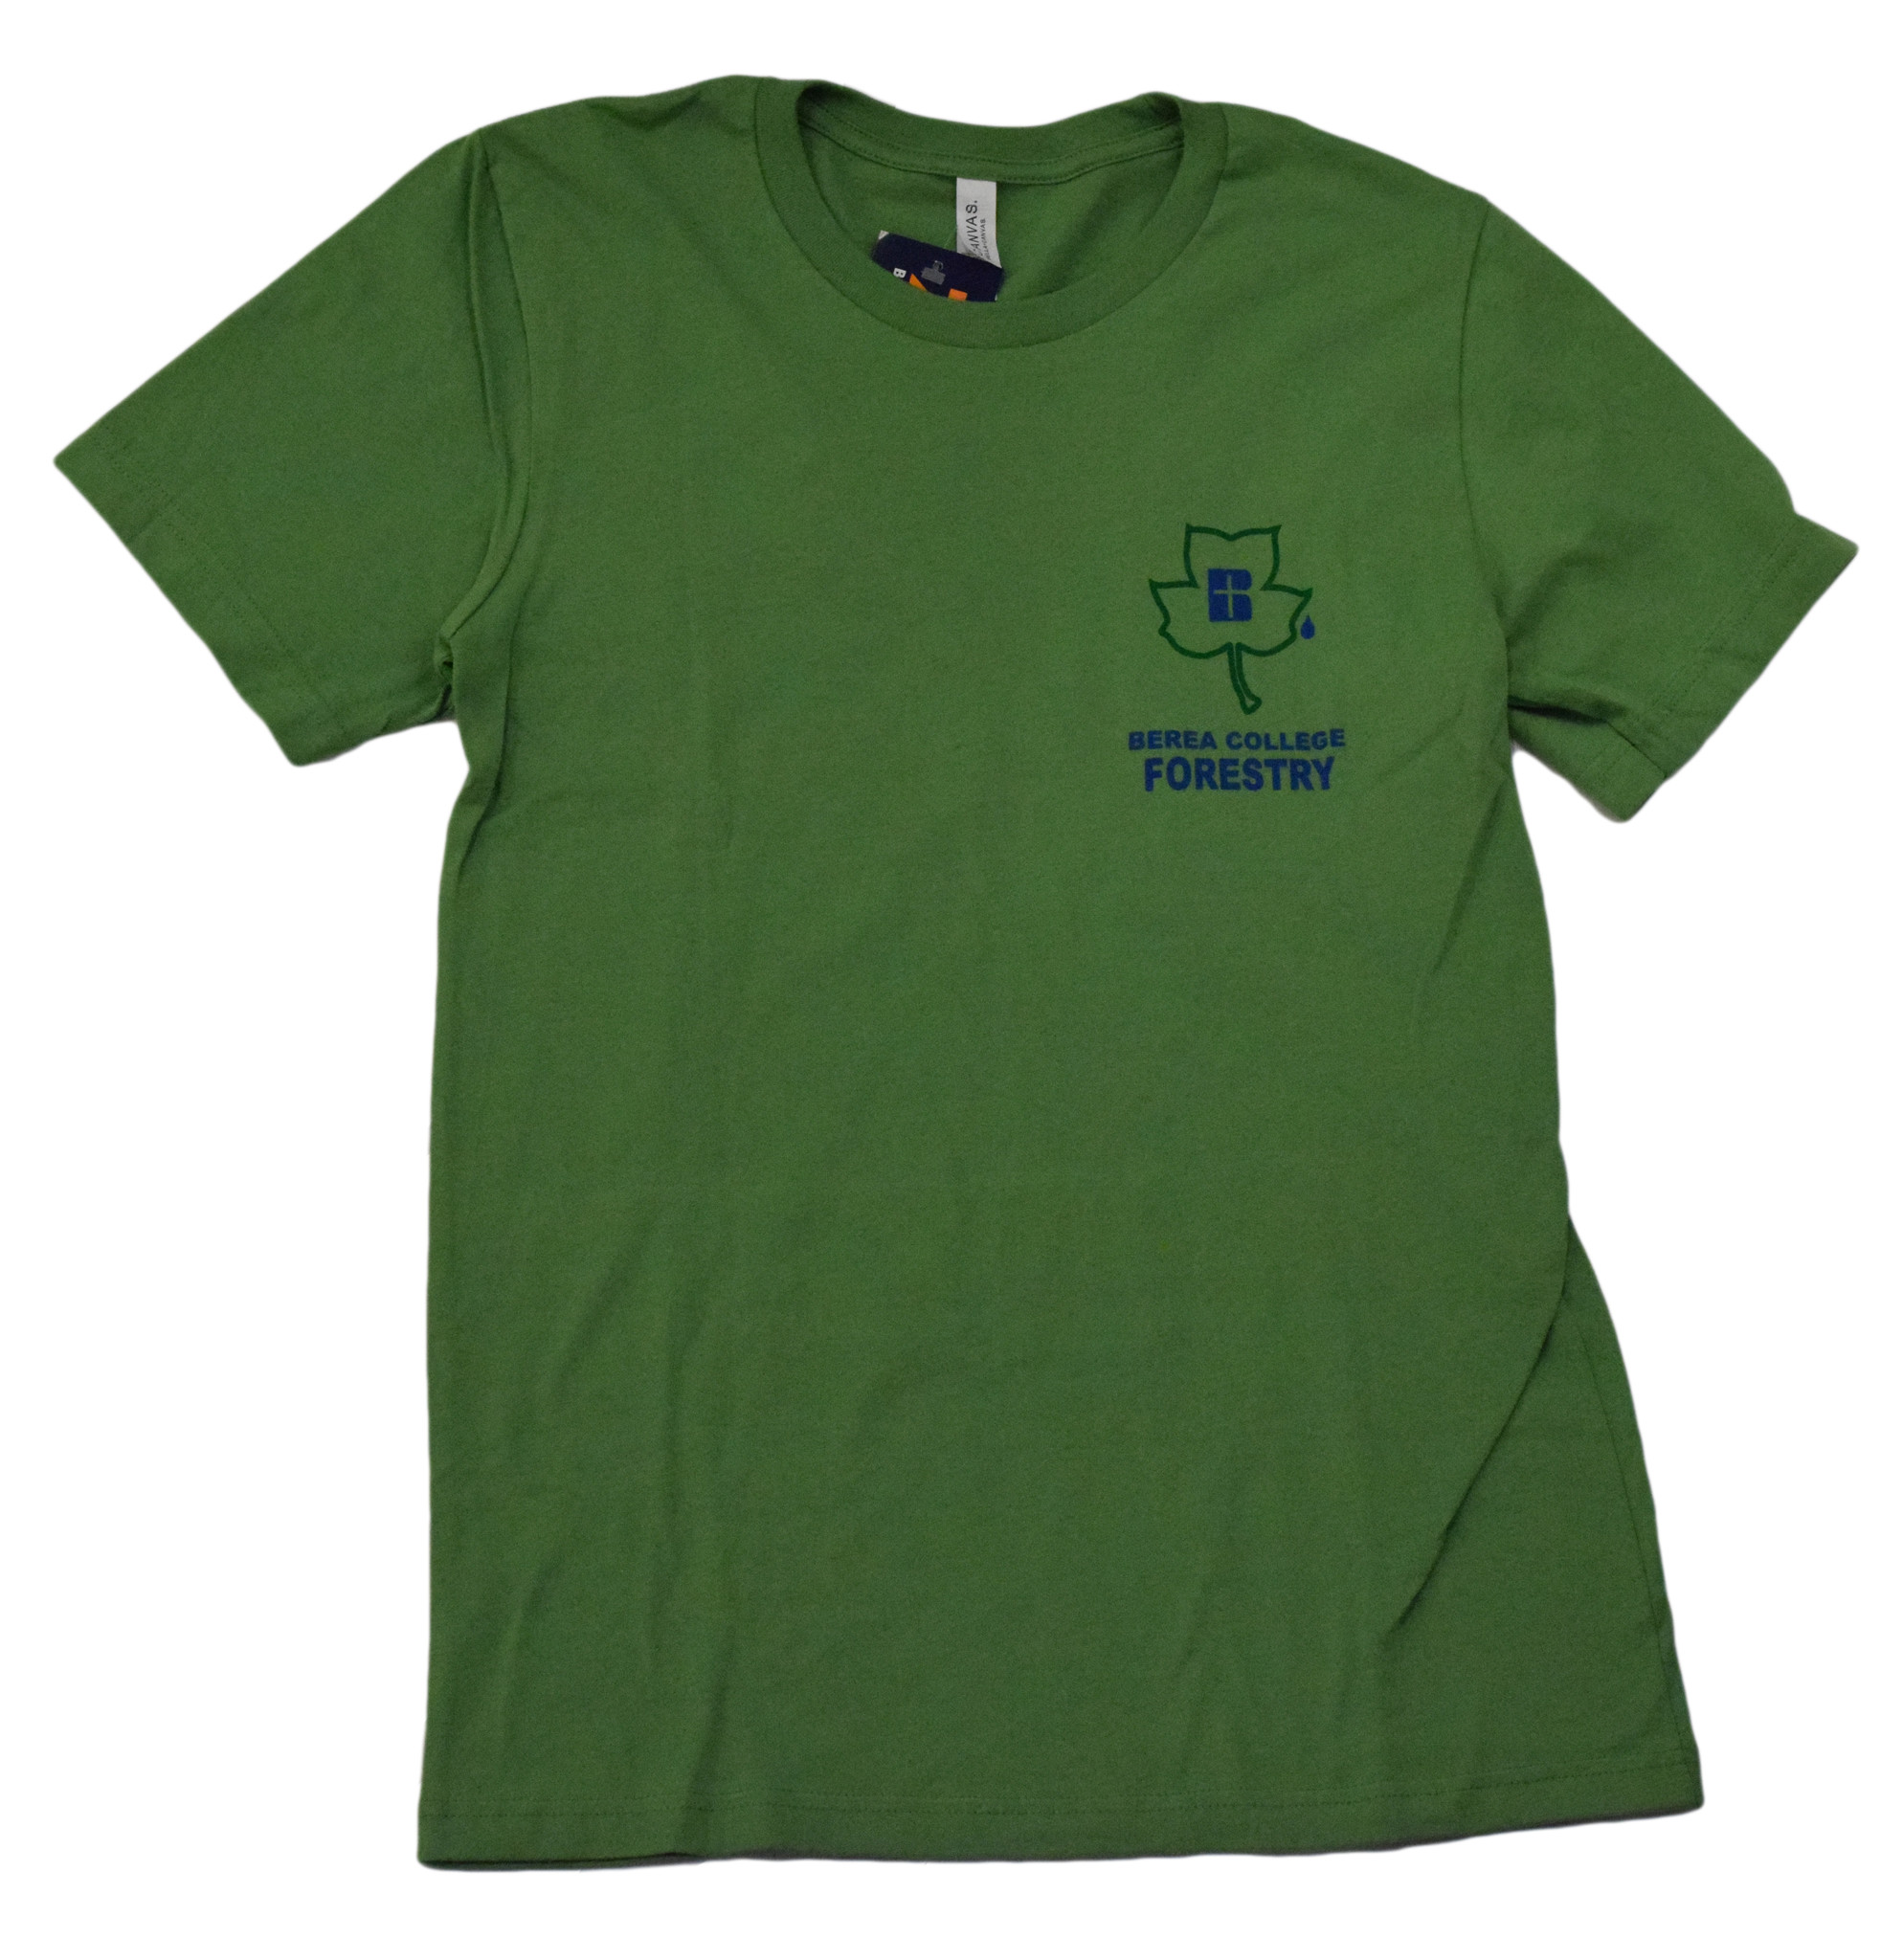 Berea College Forestry T-shirt-1